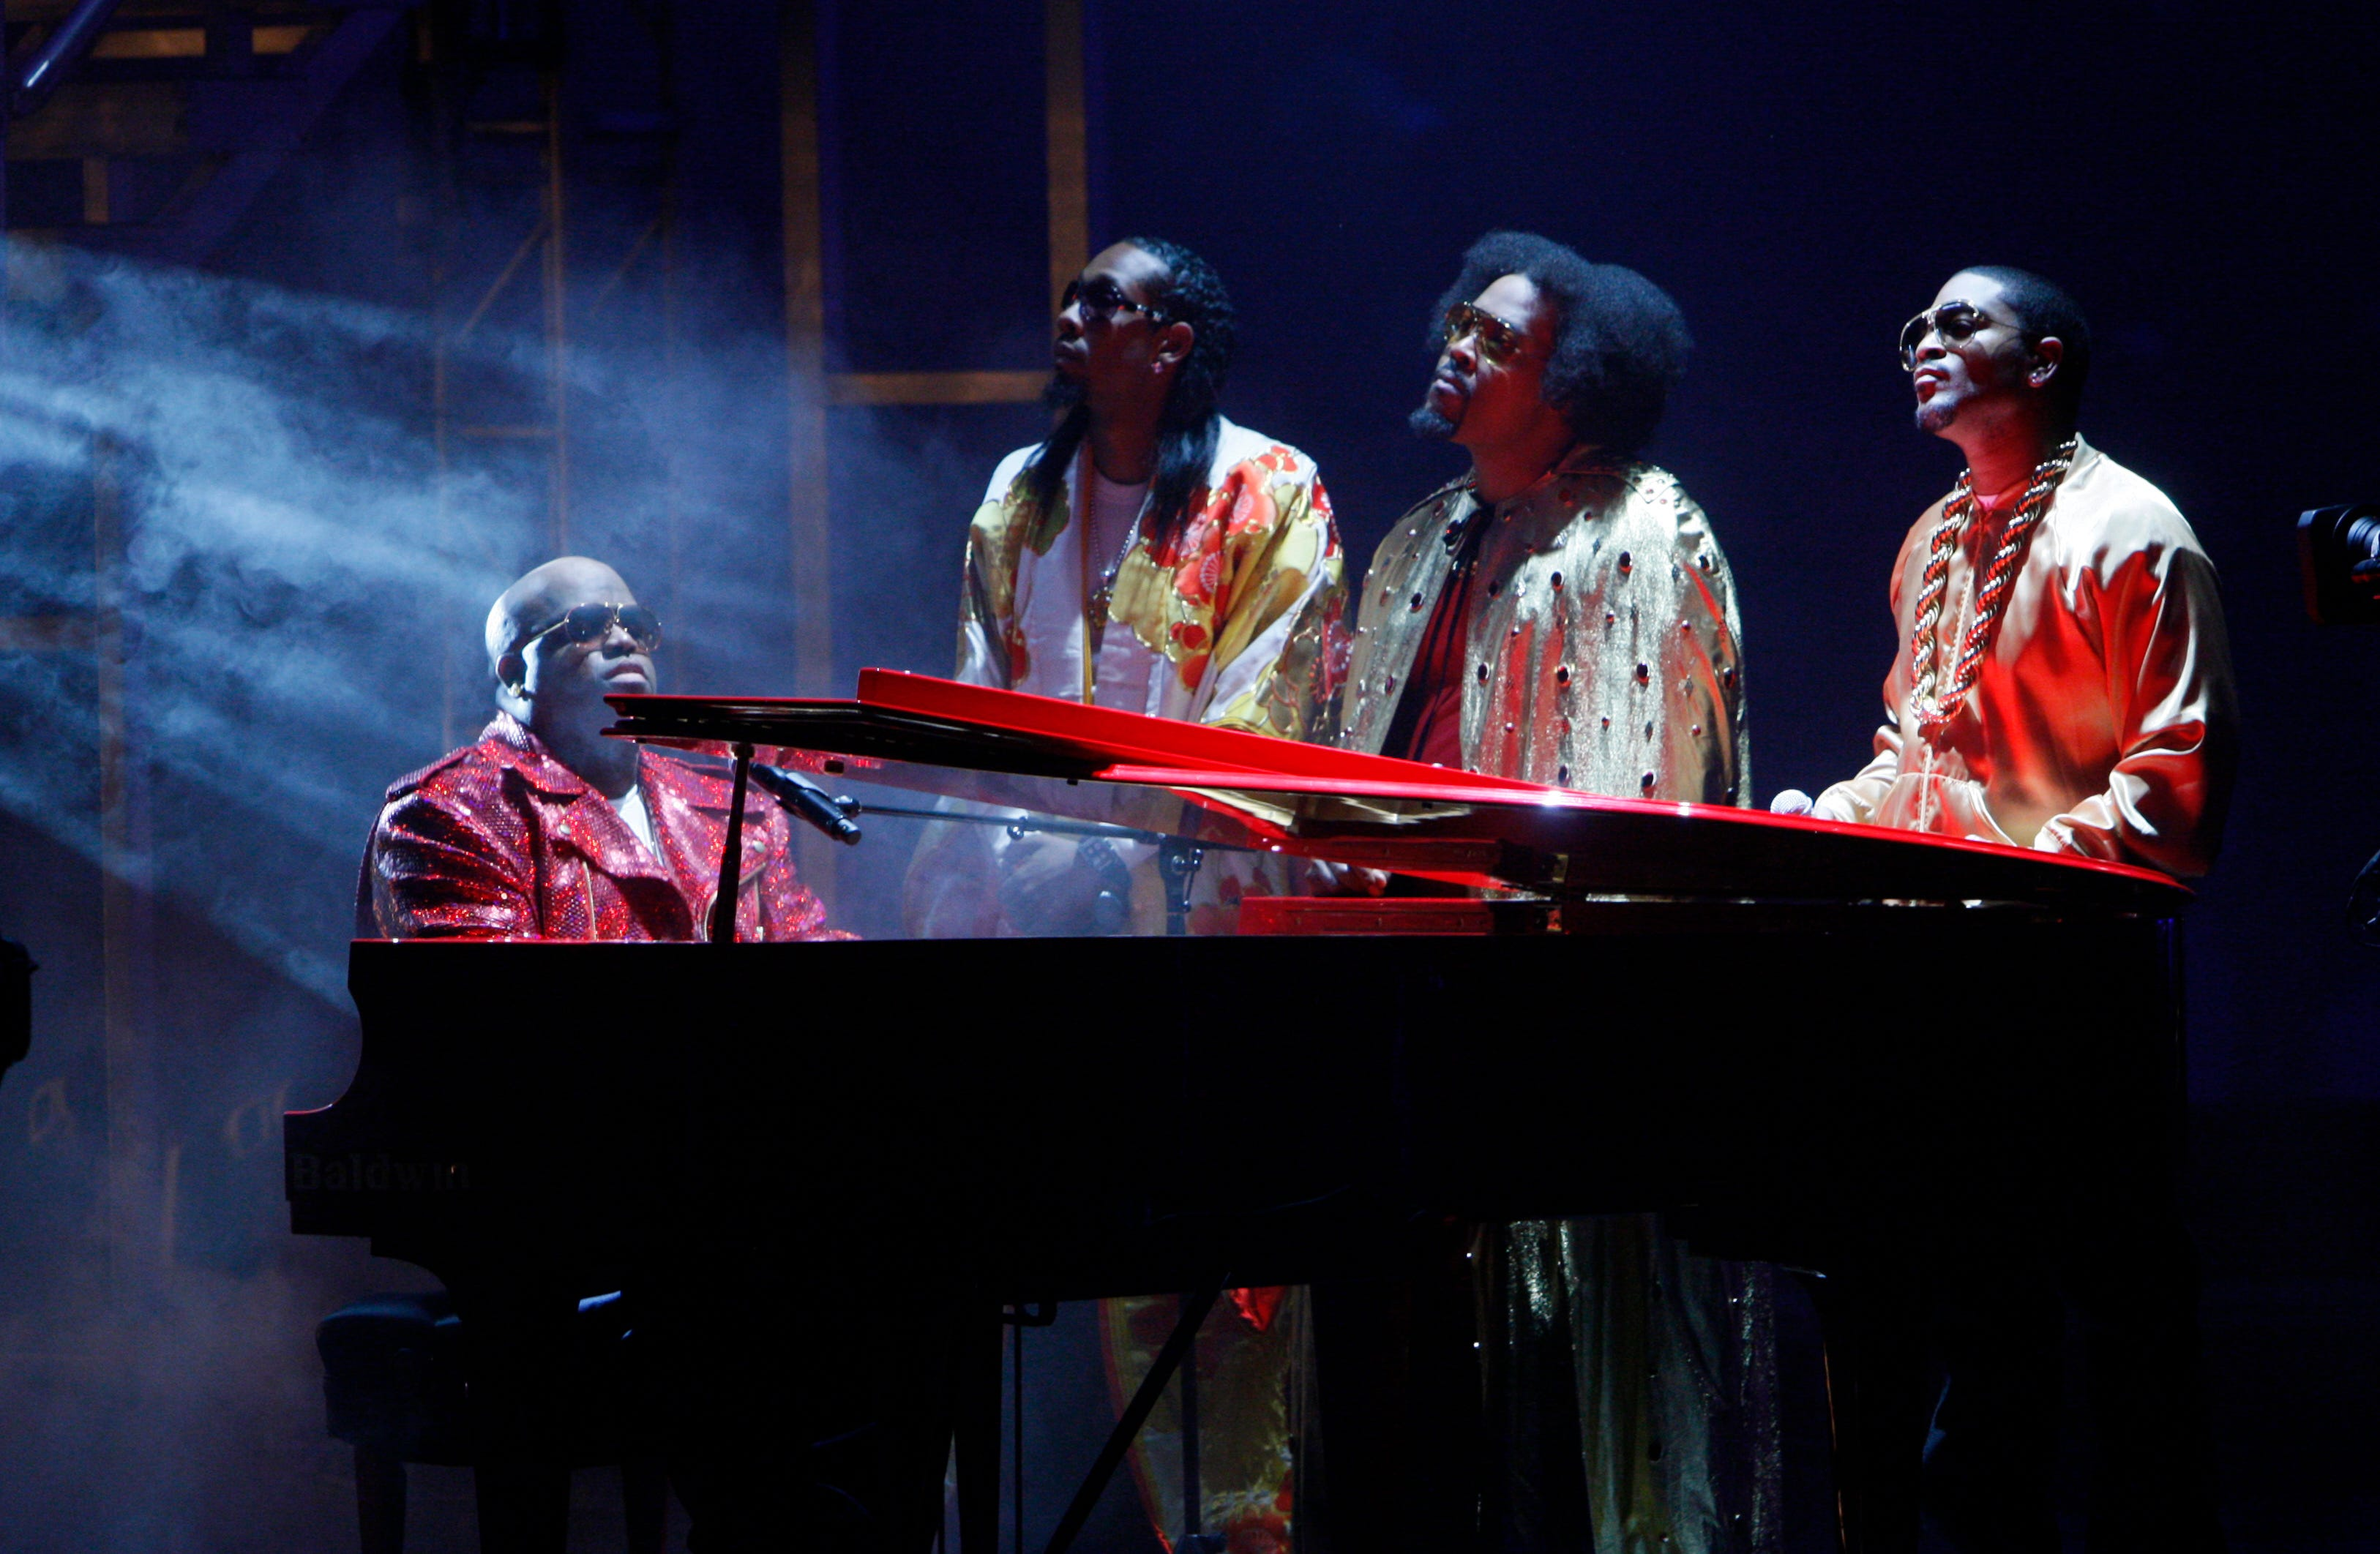 Goodie Mob performs during the taping of the BET Hip Hop Awards Saturday, Oct. 10, 2009, in Atlanta.